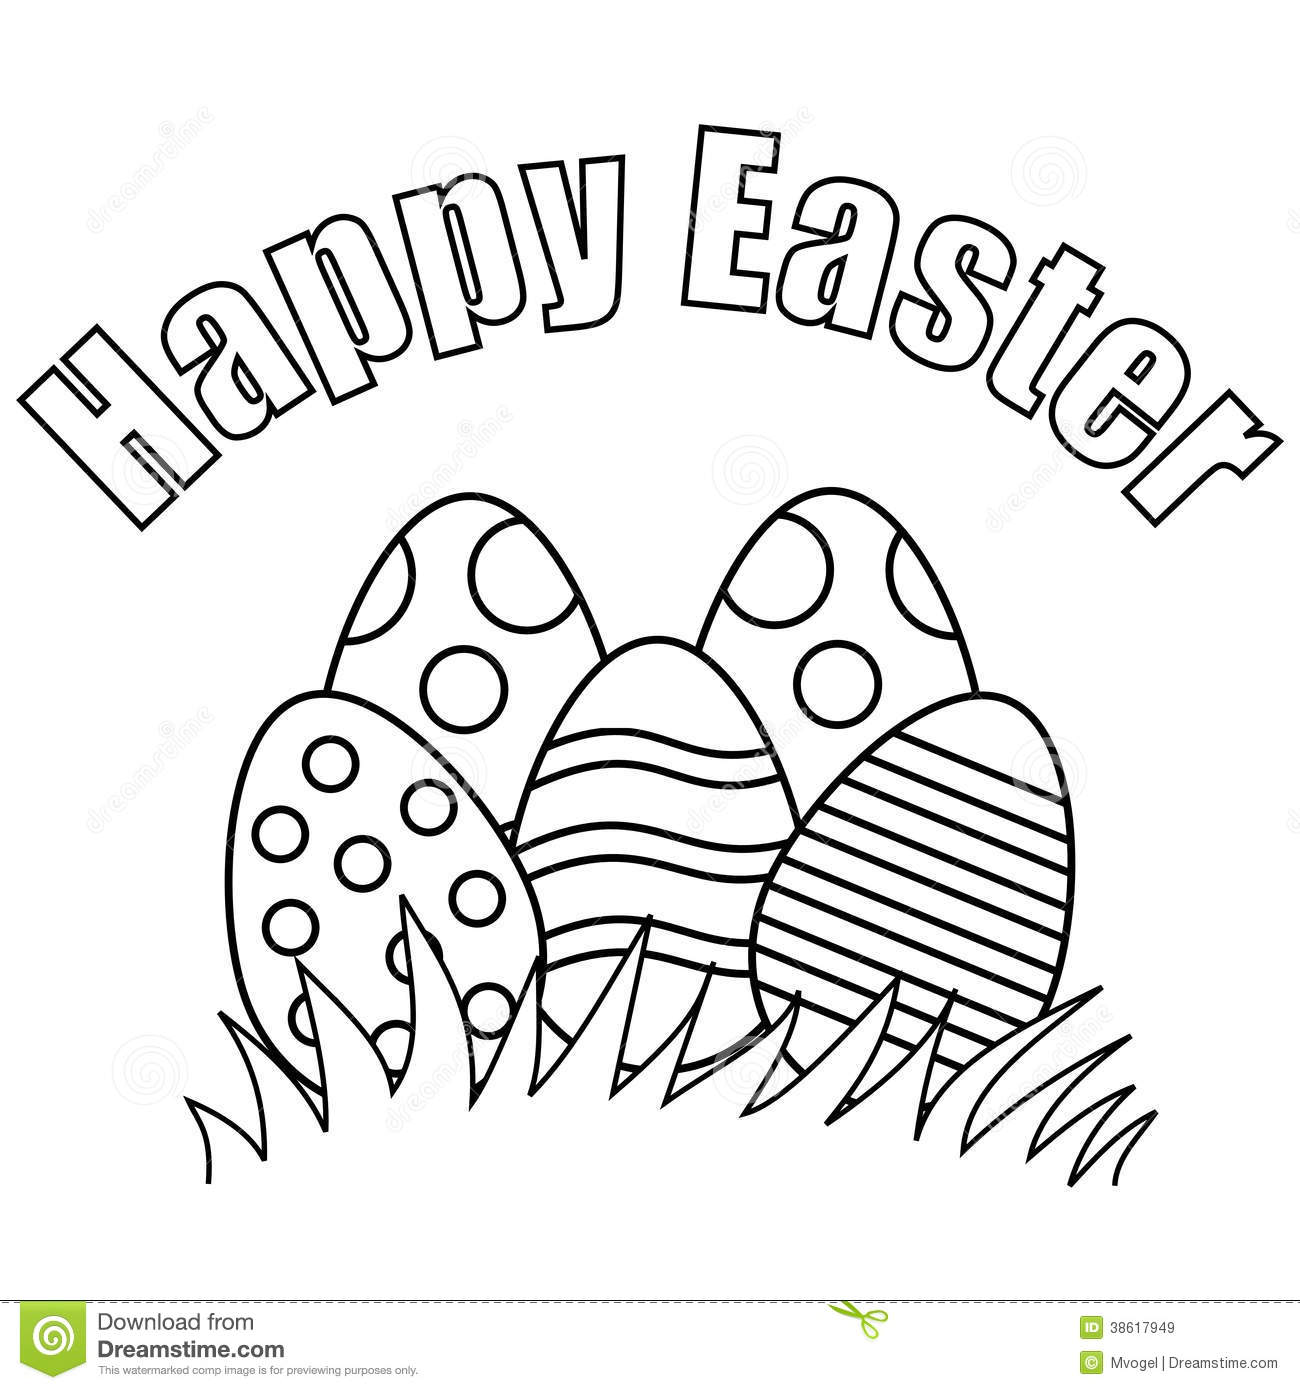 Happy easter clipart black and white